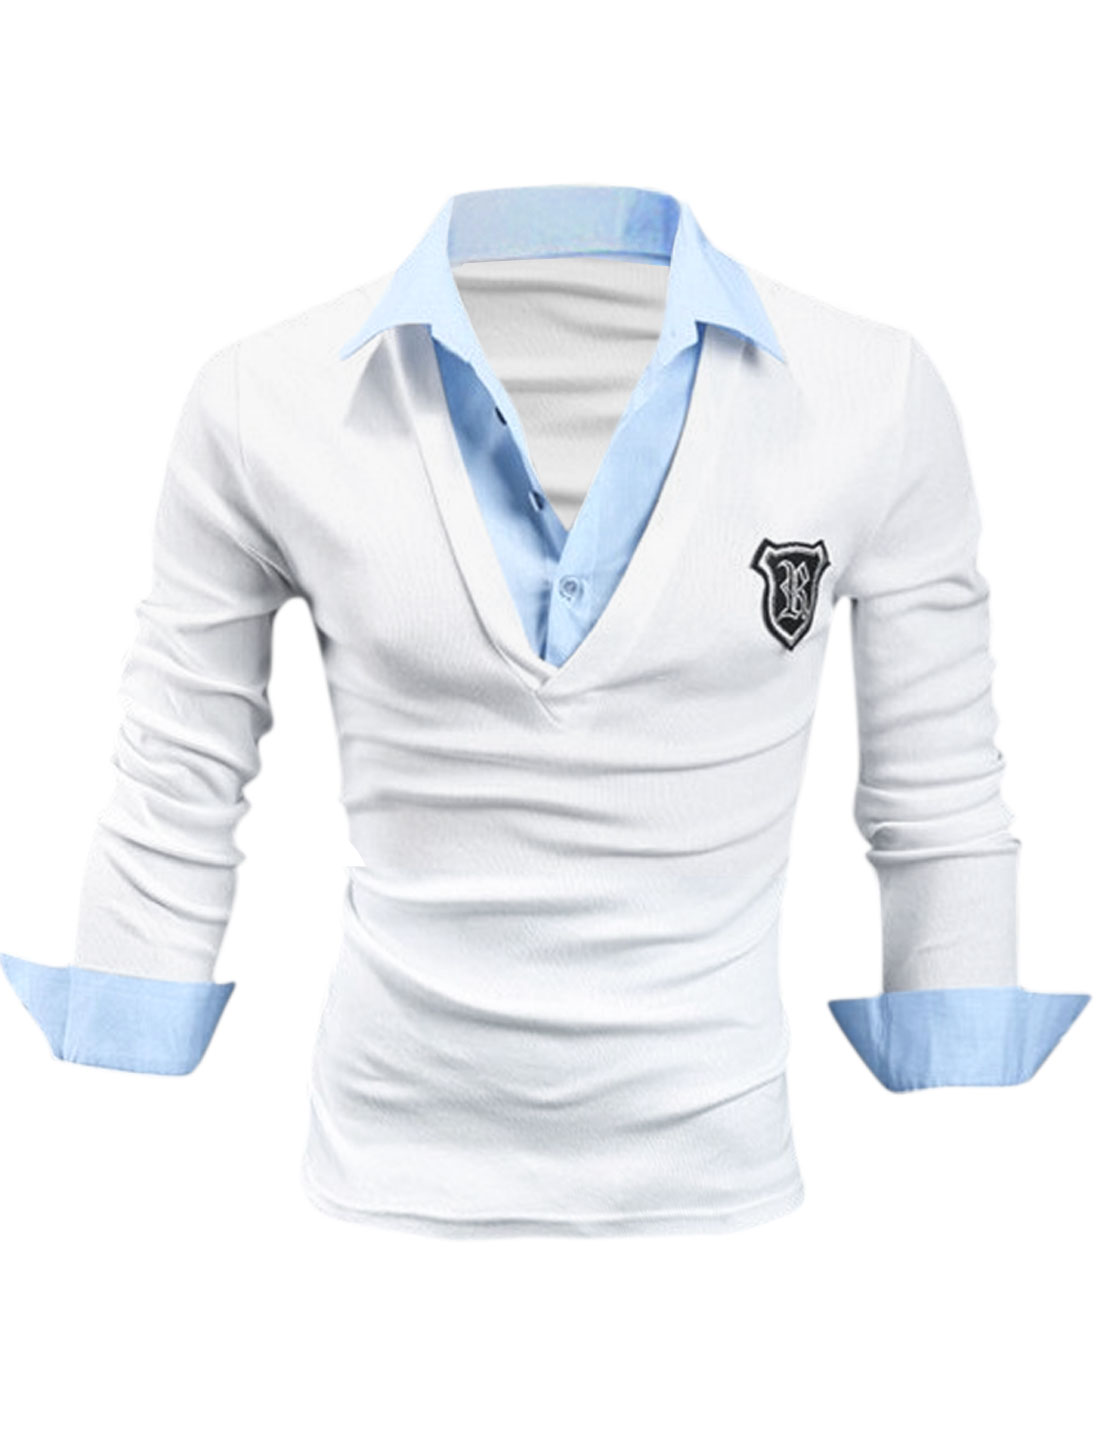 Men Long Sleeve Layered Shirts Applique Detail Polo Shirt White M